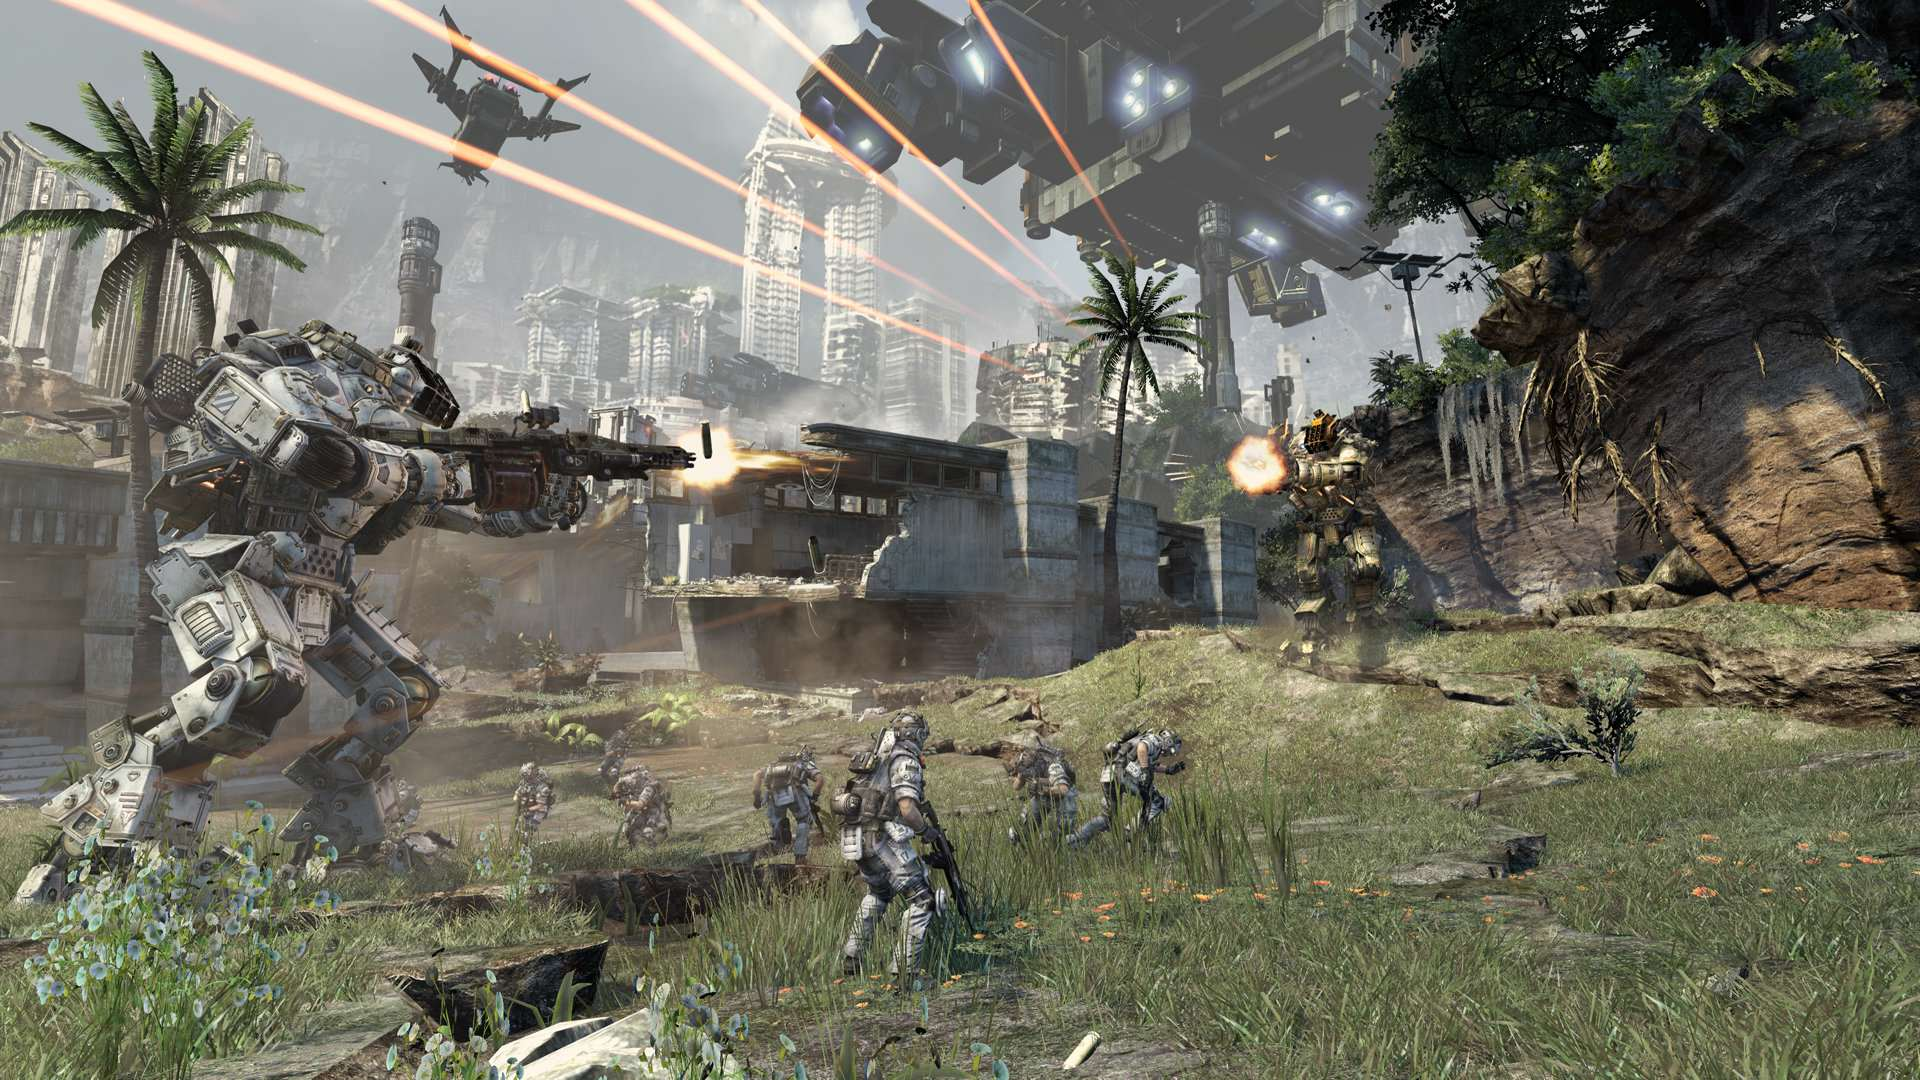 Titanfall 2 Single Player Campaign Confirmed, TV Spinoff In The Works titanfall4